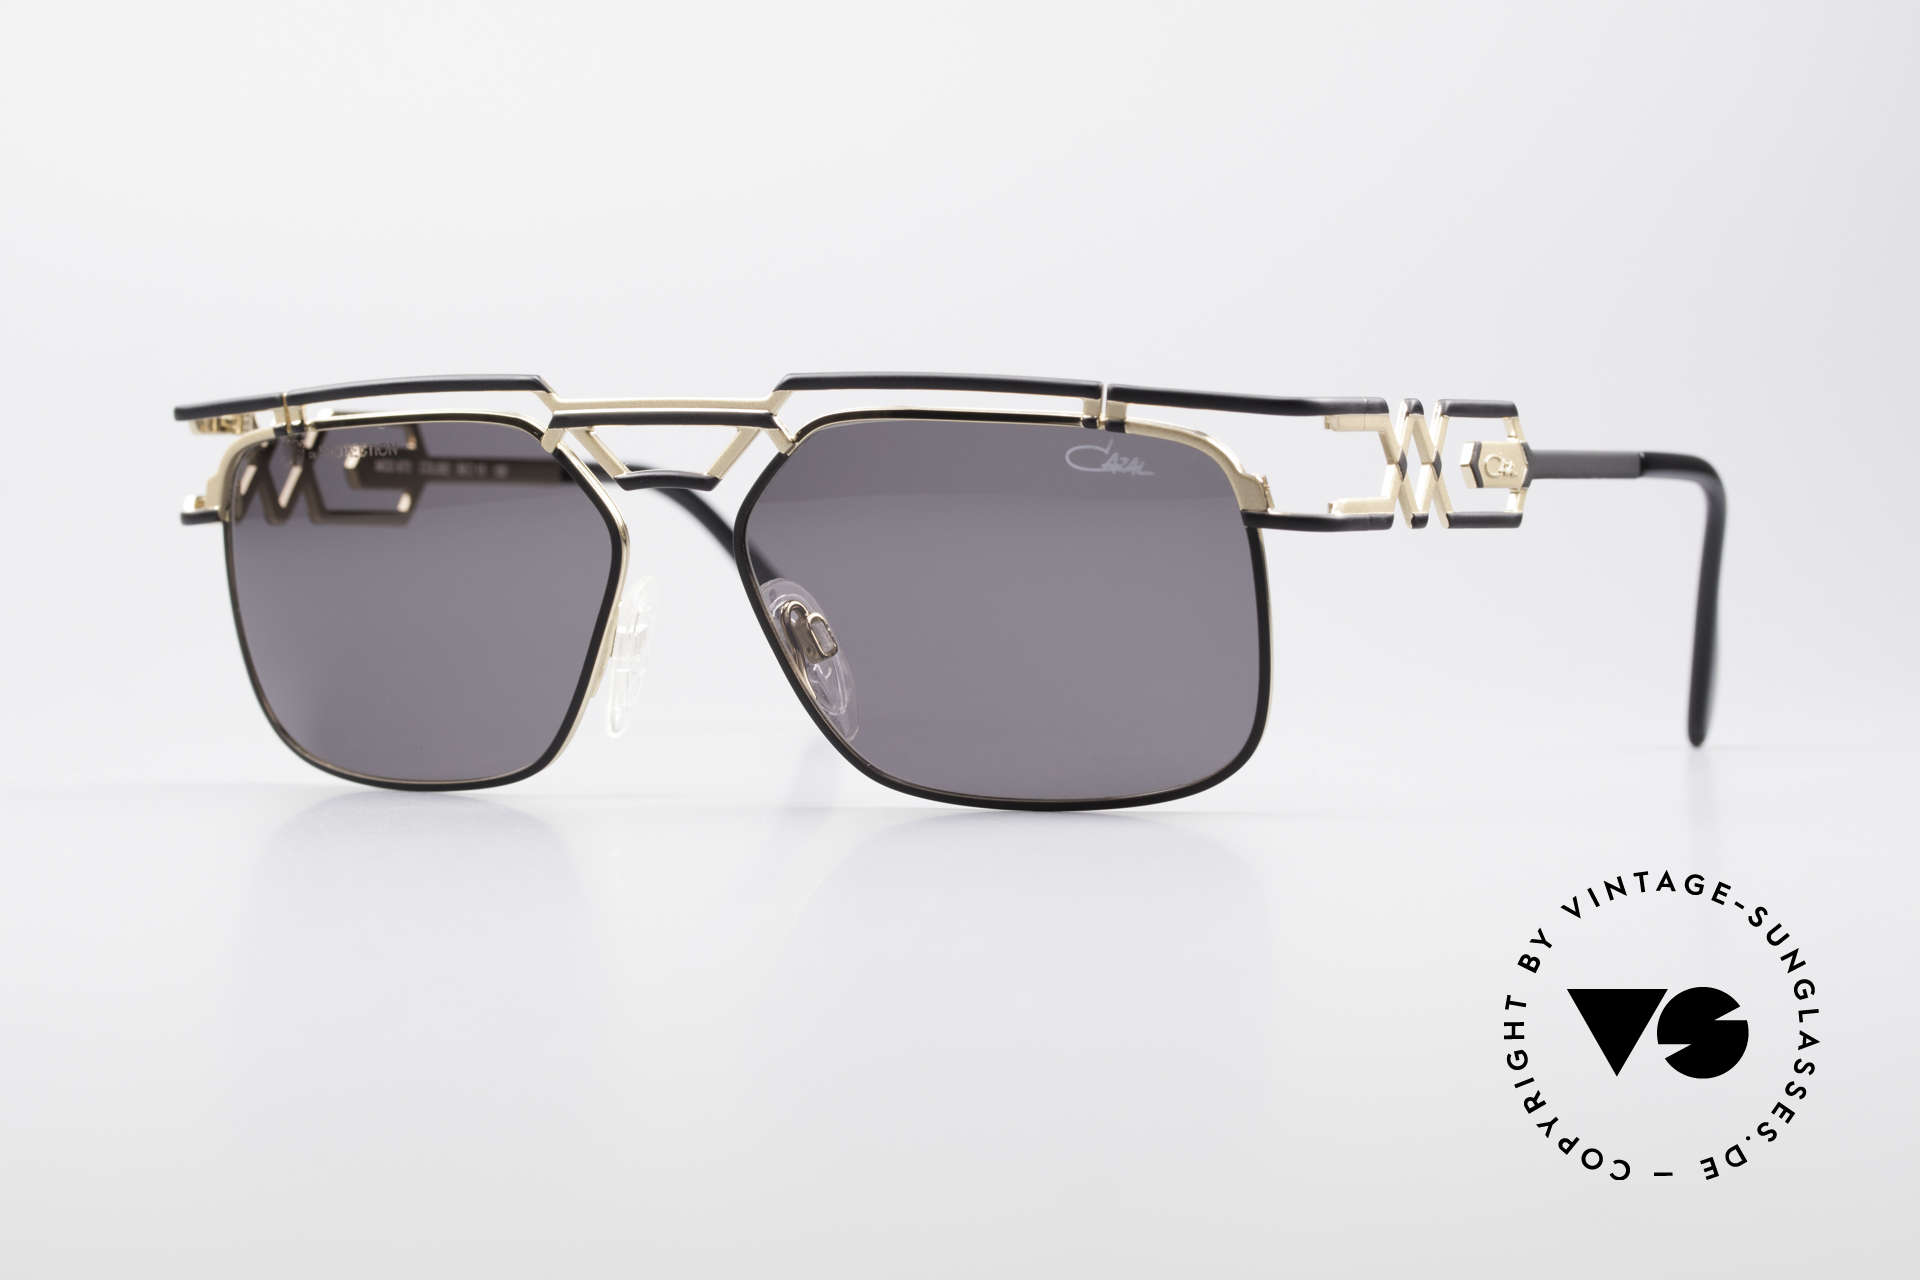 Cazal 973 90's Sunglasses Ladies Gents, monumental DESIGNER sunglasses from 1997 by CAZAL, Made for Men and Women